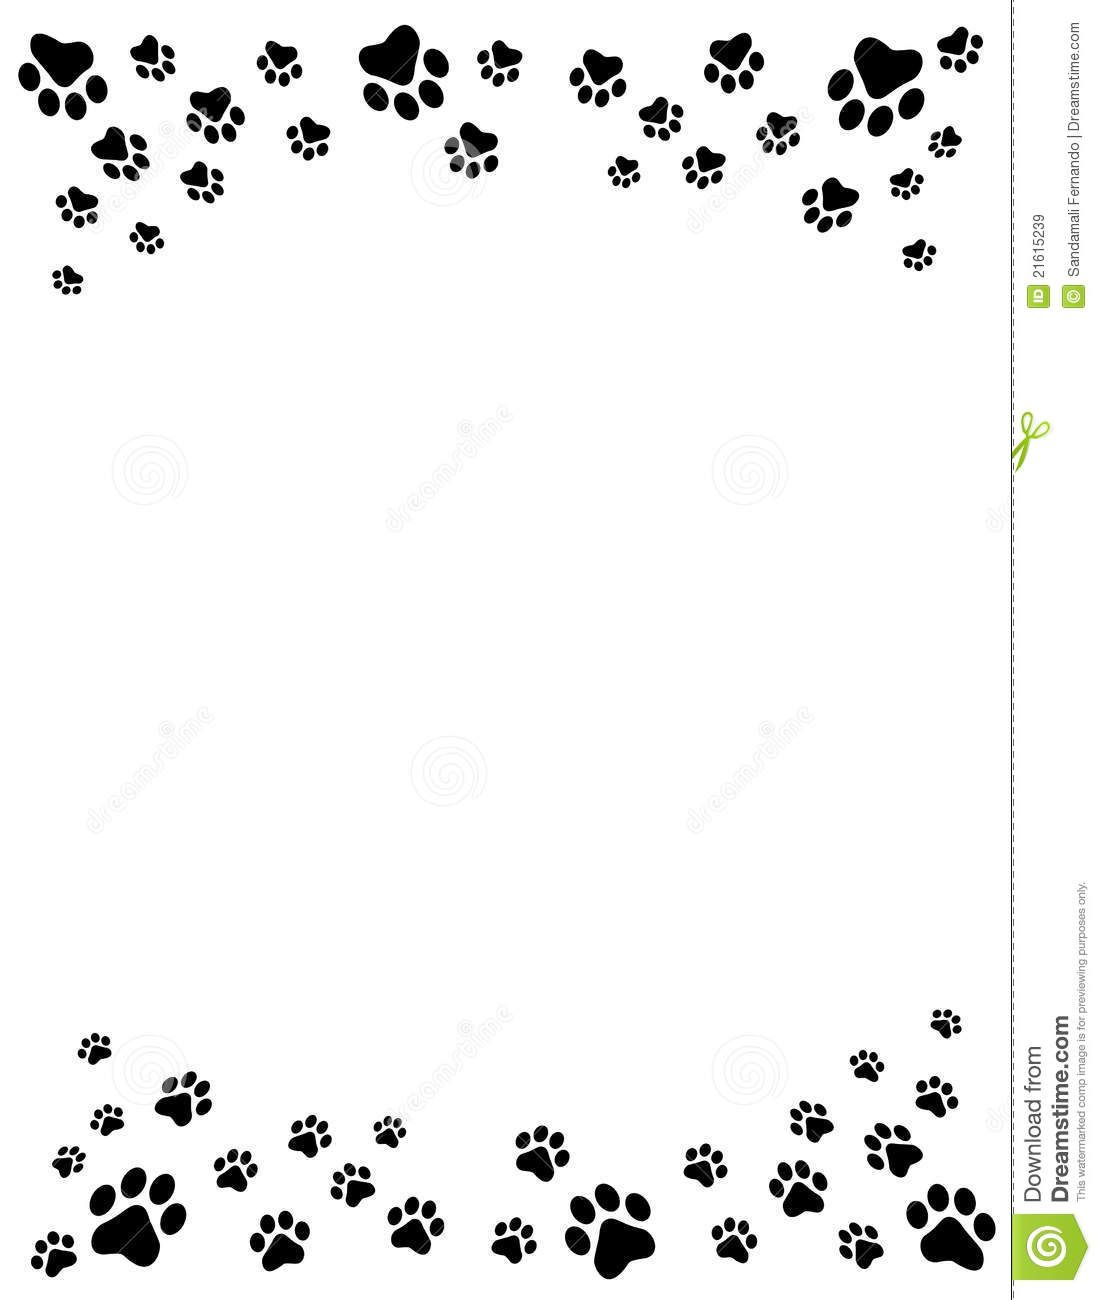 Cat border clipart free library free cat clip art | Cat And Free Dog Clip Art Borders Paw Prints ... library